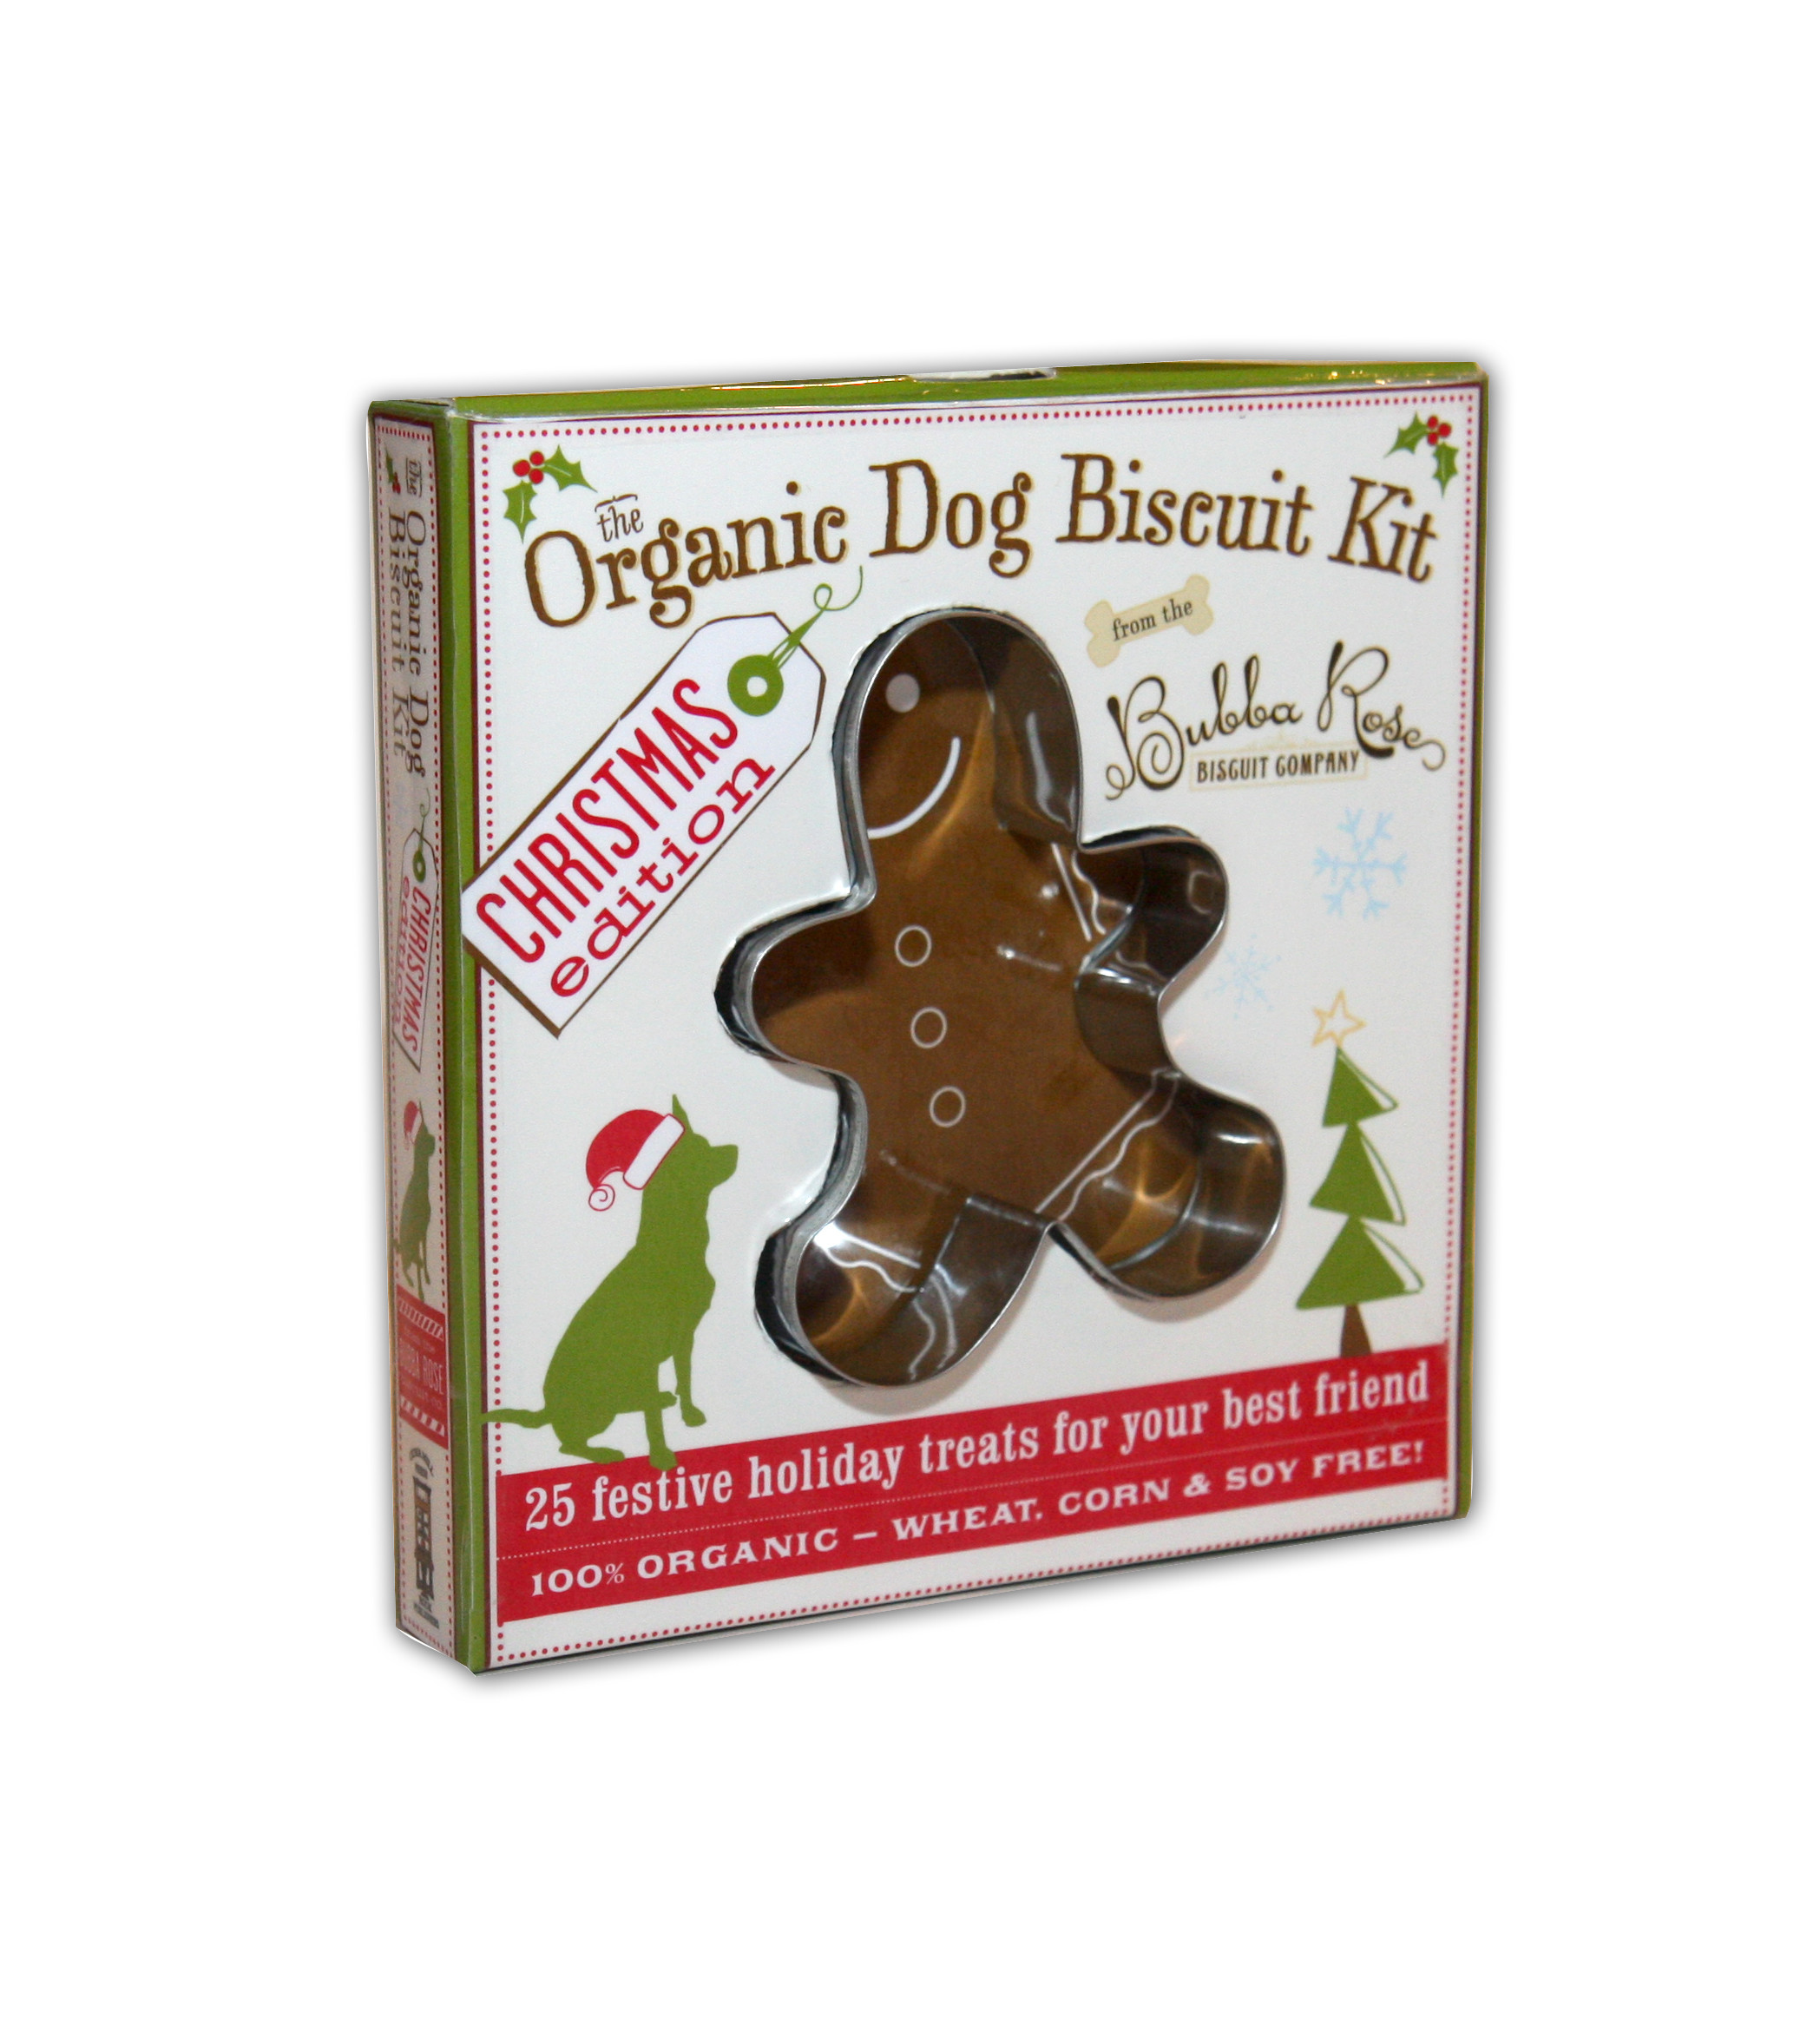 The-organic-dog-biscuit-kit-christmas-edition-9781604331752.in01